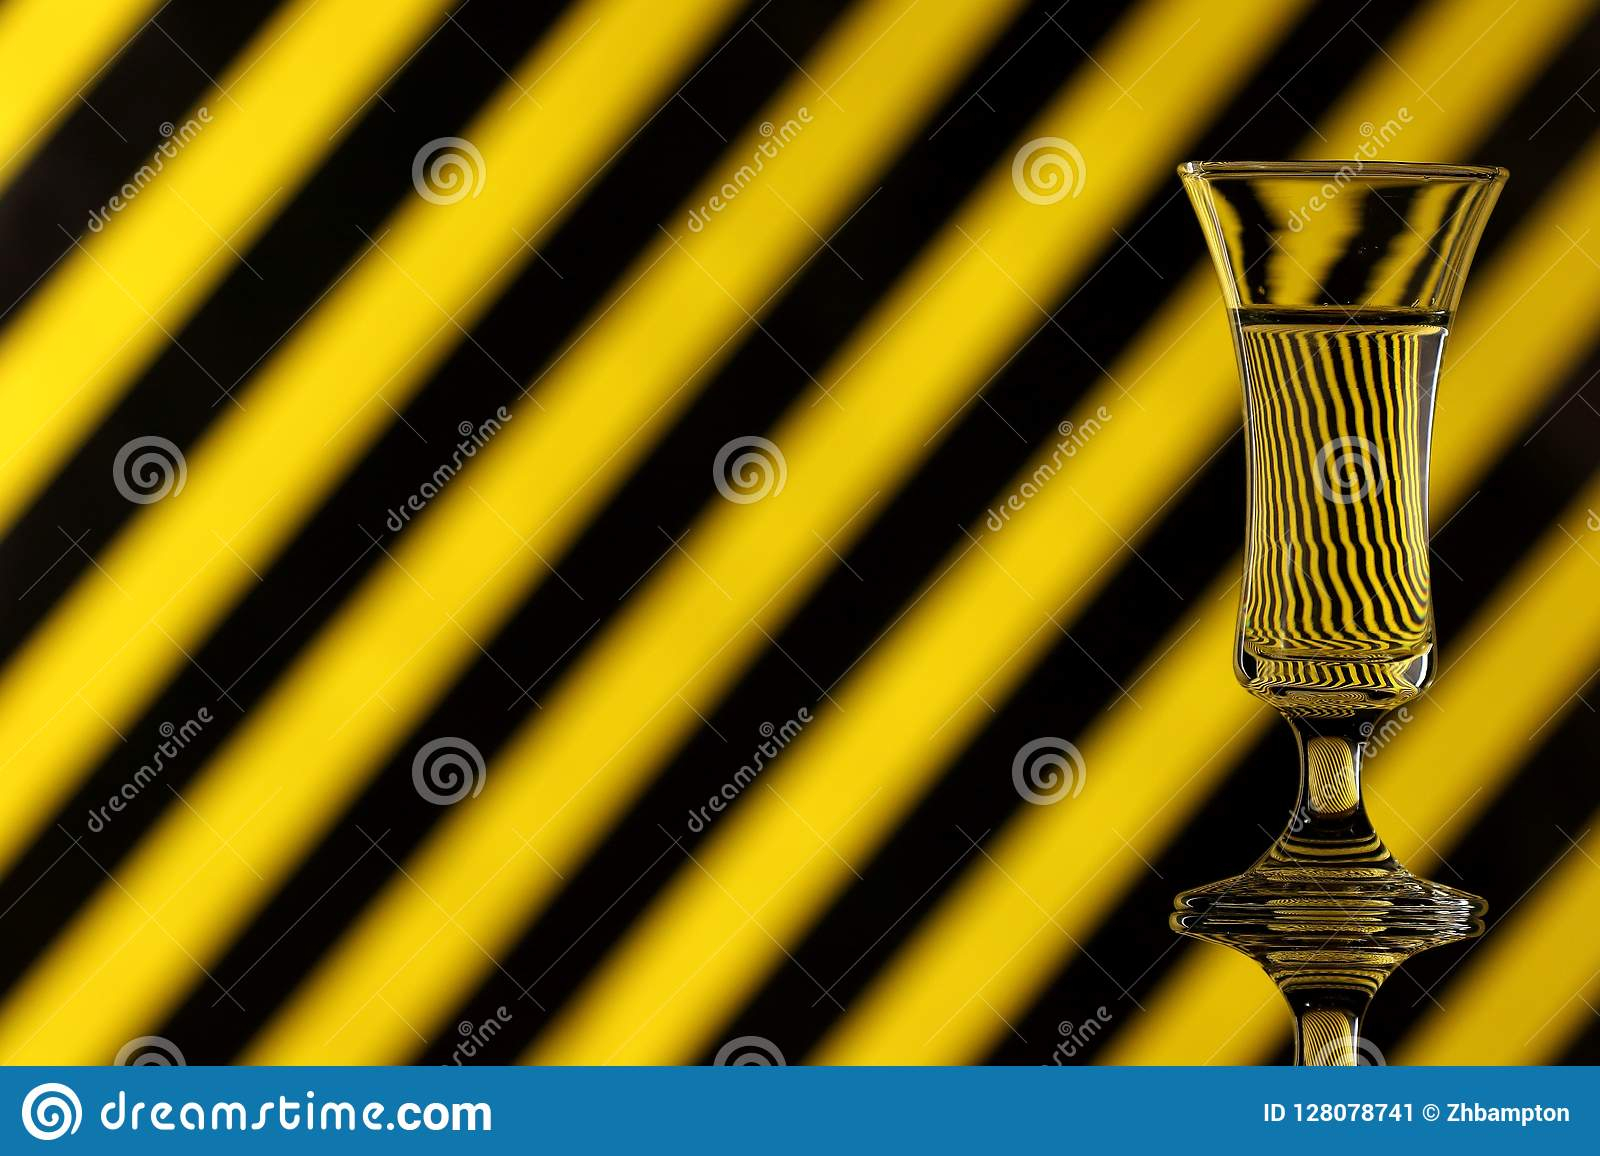 glass water multicoloured background showing refraction canvas wall art yellow black striped copy space